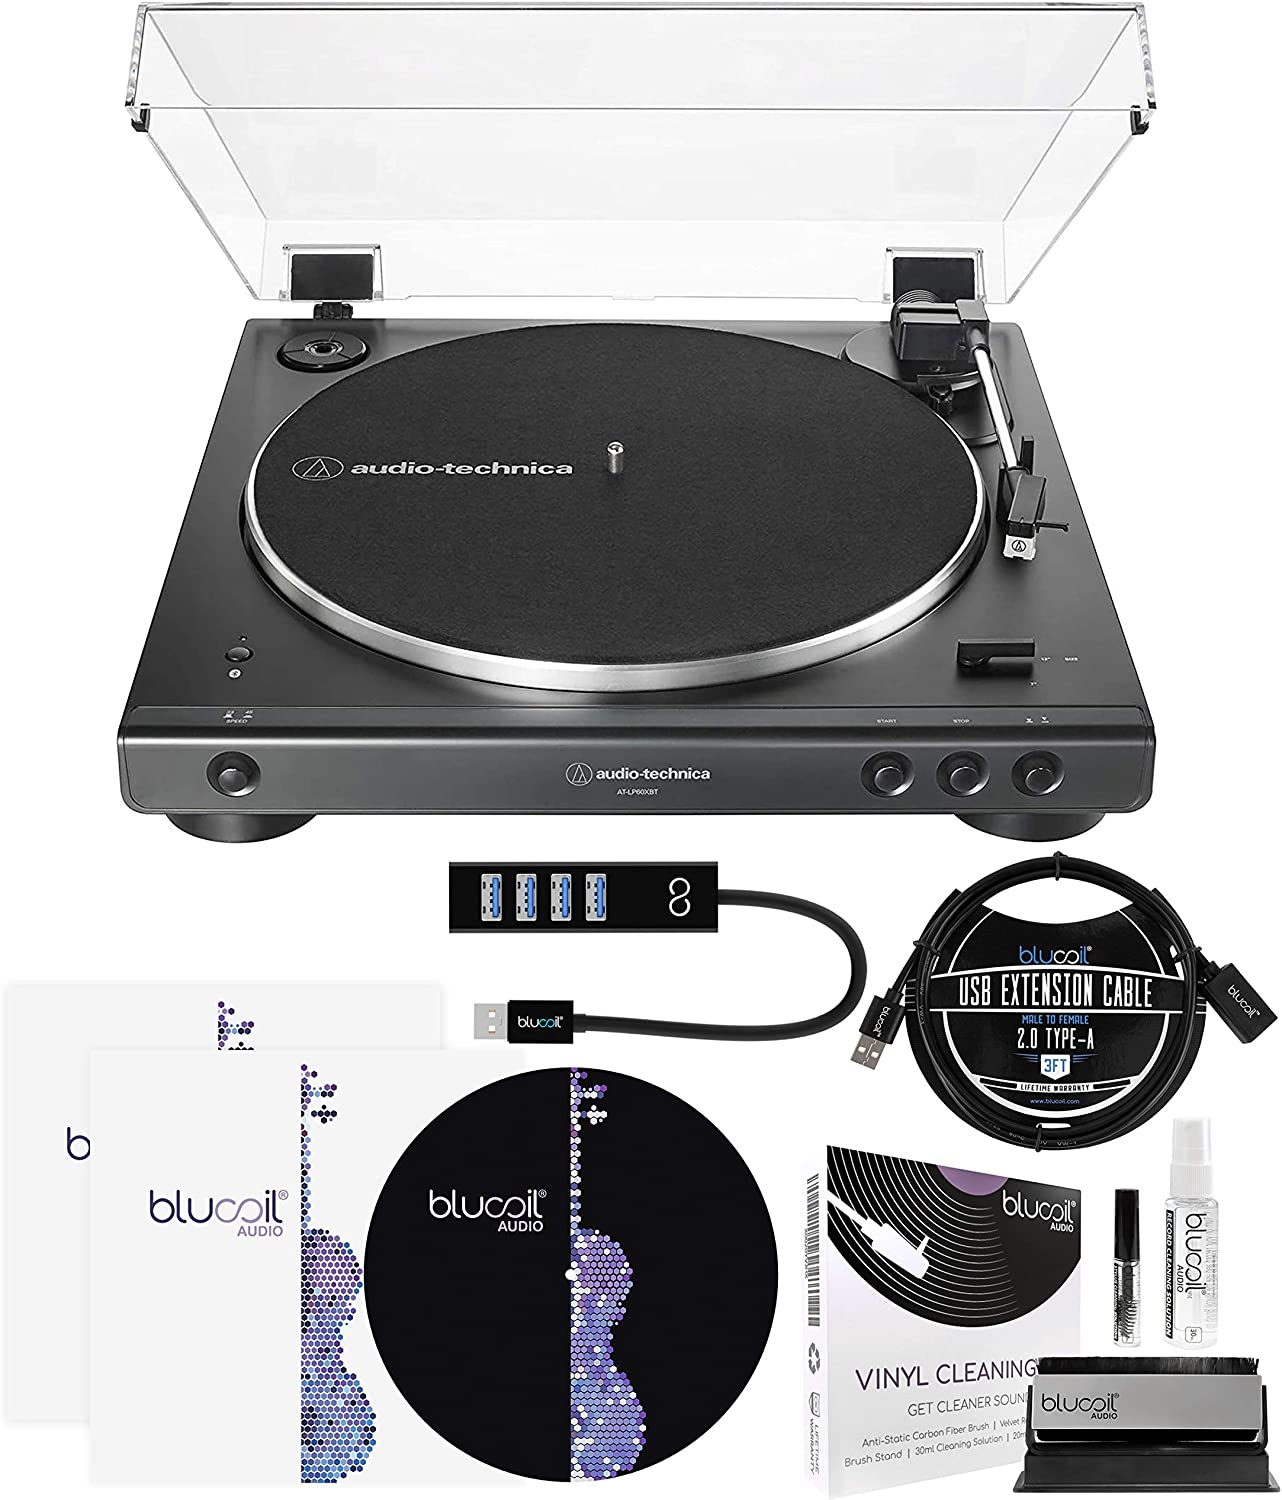 Audio-Technica AT-LP60XUSB USB Belt-Drive Turntable (Black) Bundle with Blucoil Type-A Hub, 3-FT USB 2.0 Type-A Extension Cable, 2-in-1 Vinyl Cleaning Kit, Turntable Slipmat, and 2X LP Inner Sleeves